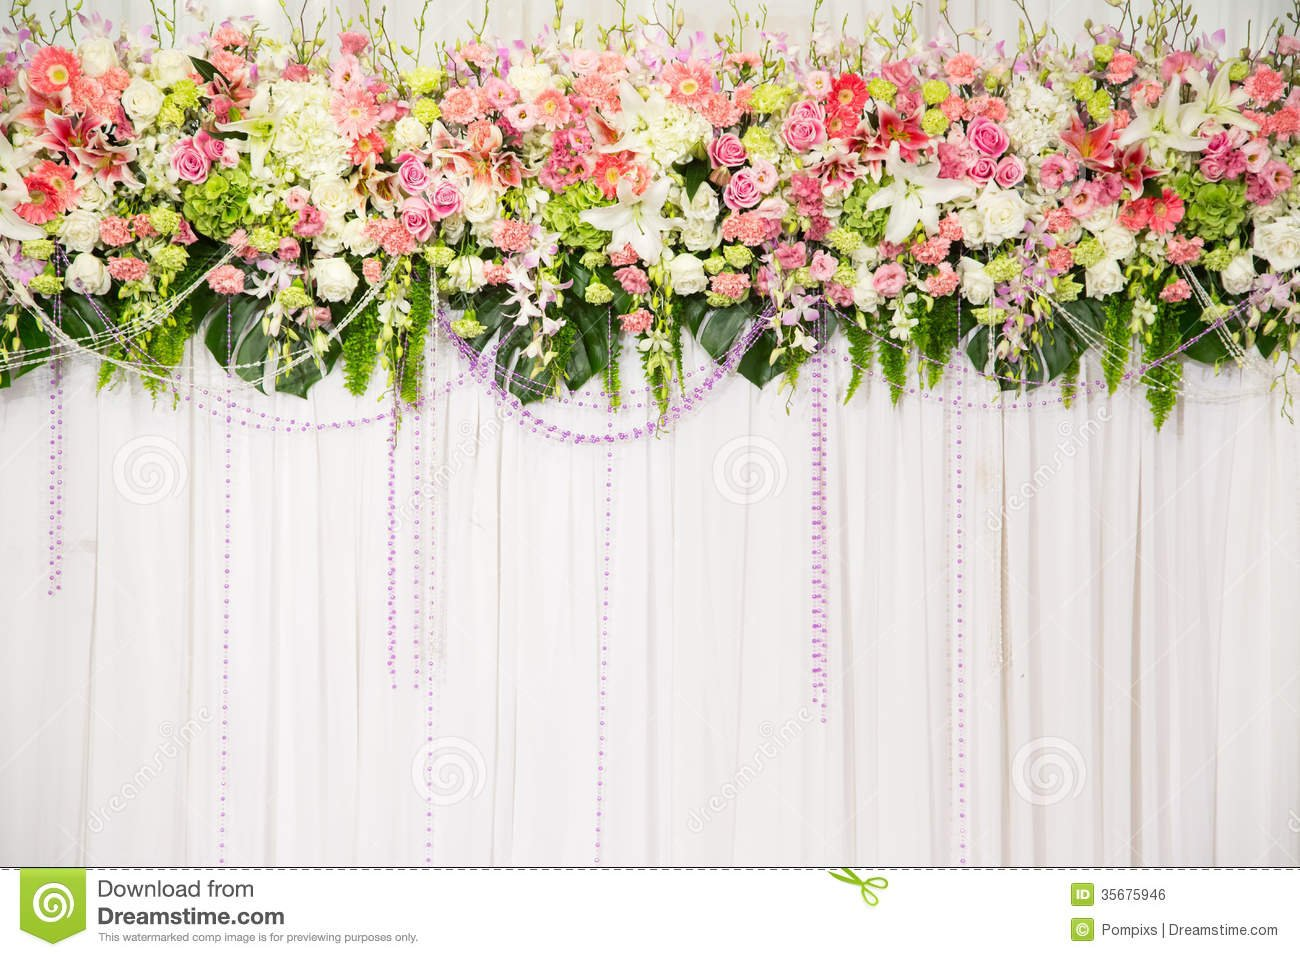 Wedding flower backgrounds wallpapersafari for Background decoration